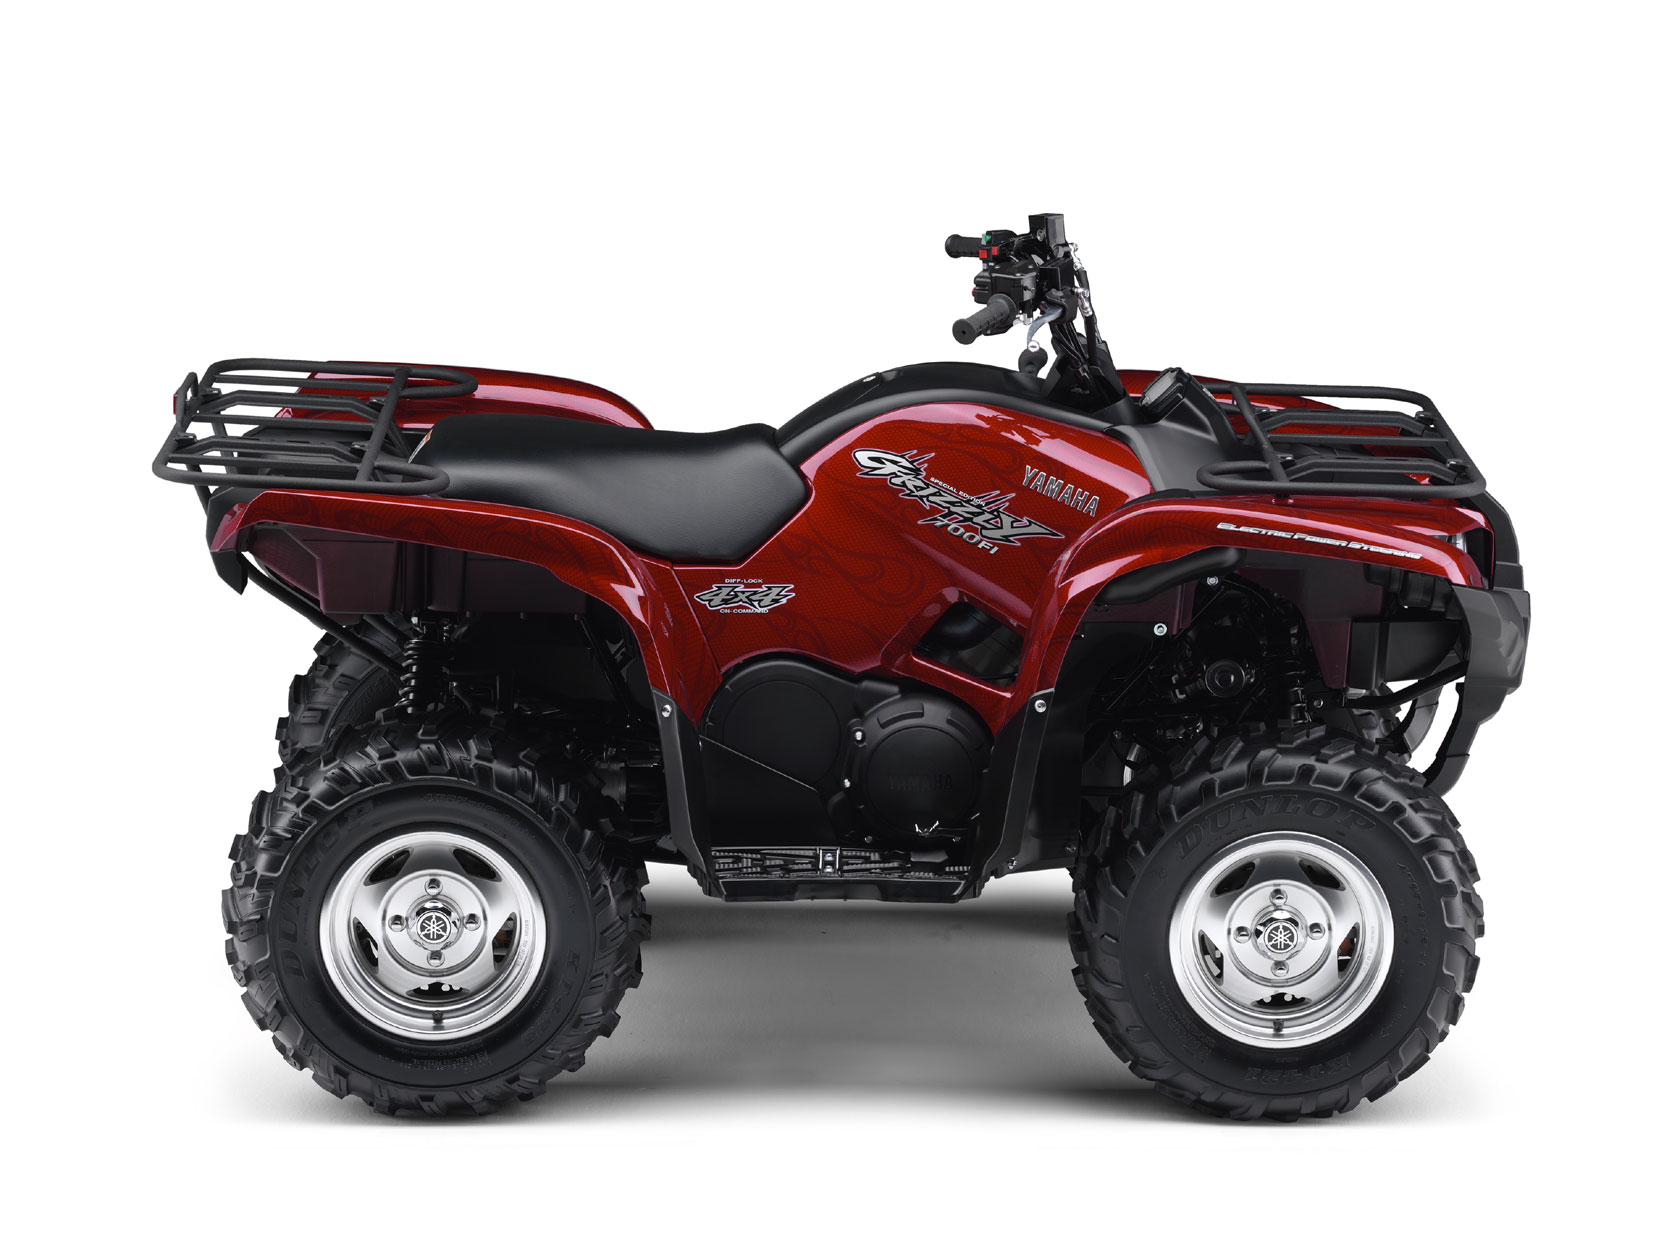 Yamaha grizzly 700 fi eps special edition specs 2008 for 2008 yamaha rhino 700